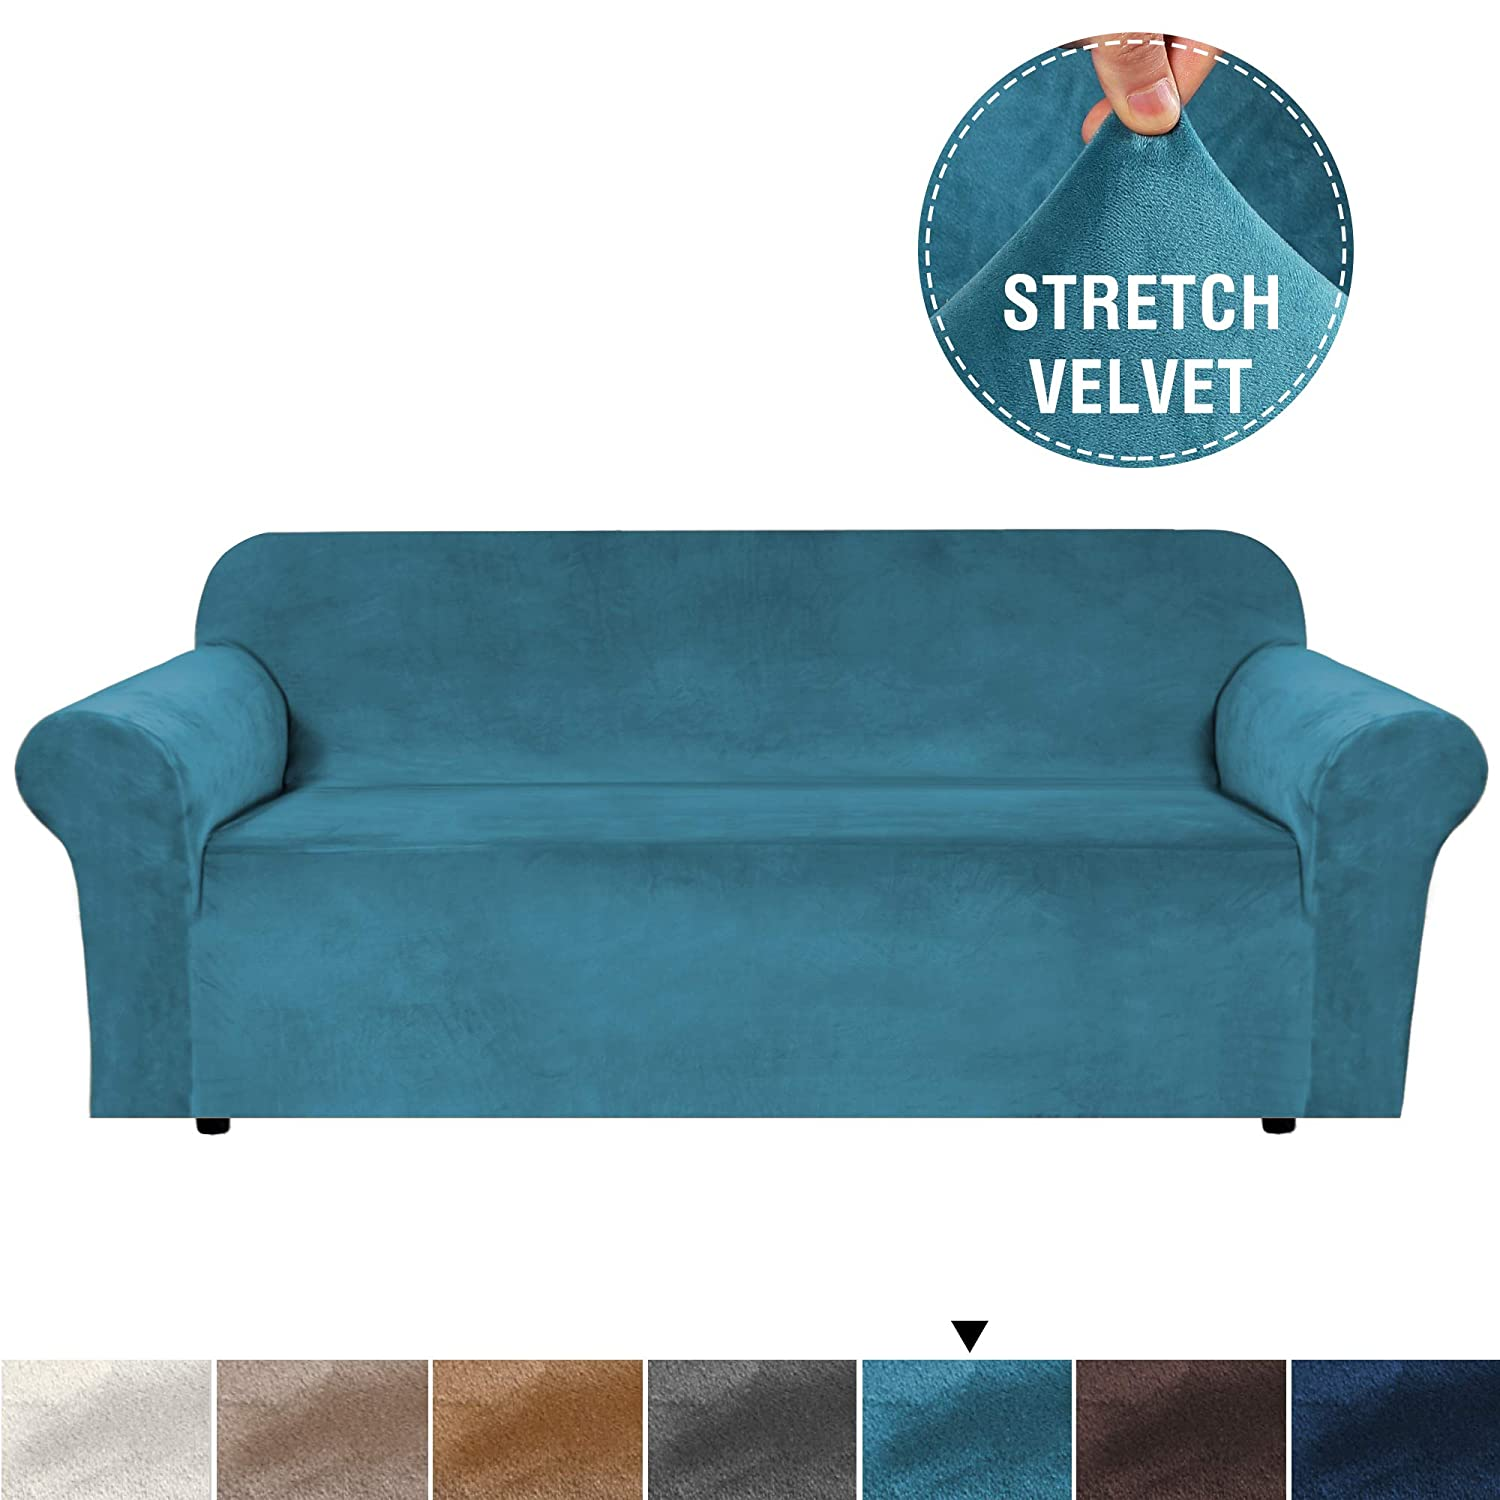 Luxurious Real Velvet High Stretch Sofa Cover/Slipcover Soft Spandex Slip Resistant Stylish Velvet Plush Furniture Cover Couch Covers Slip Covers Machine Wash, Sofa 3 Seater, Peacock Blue